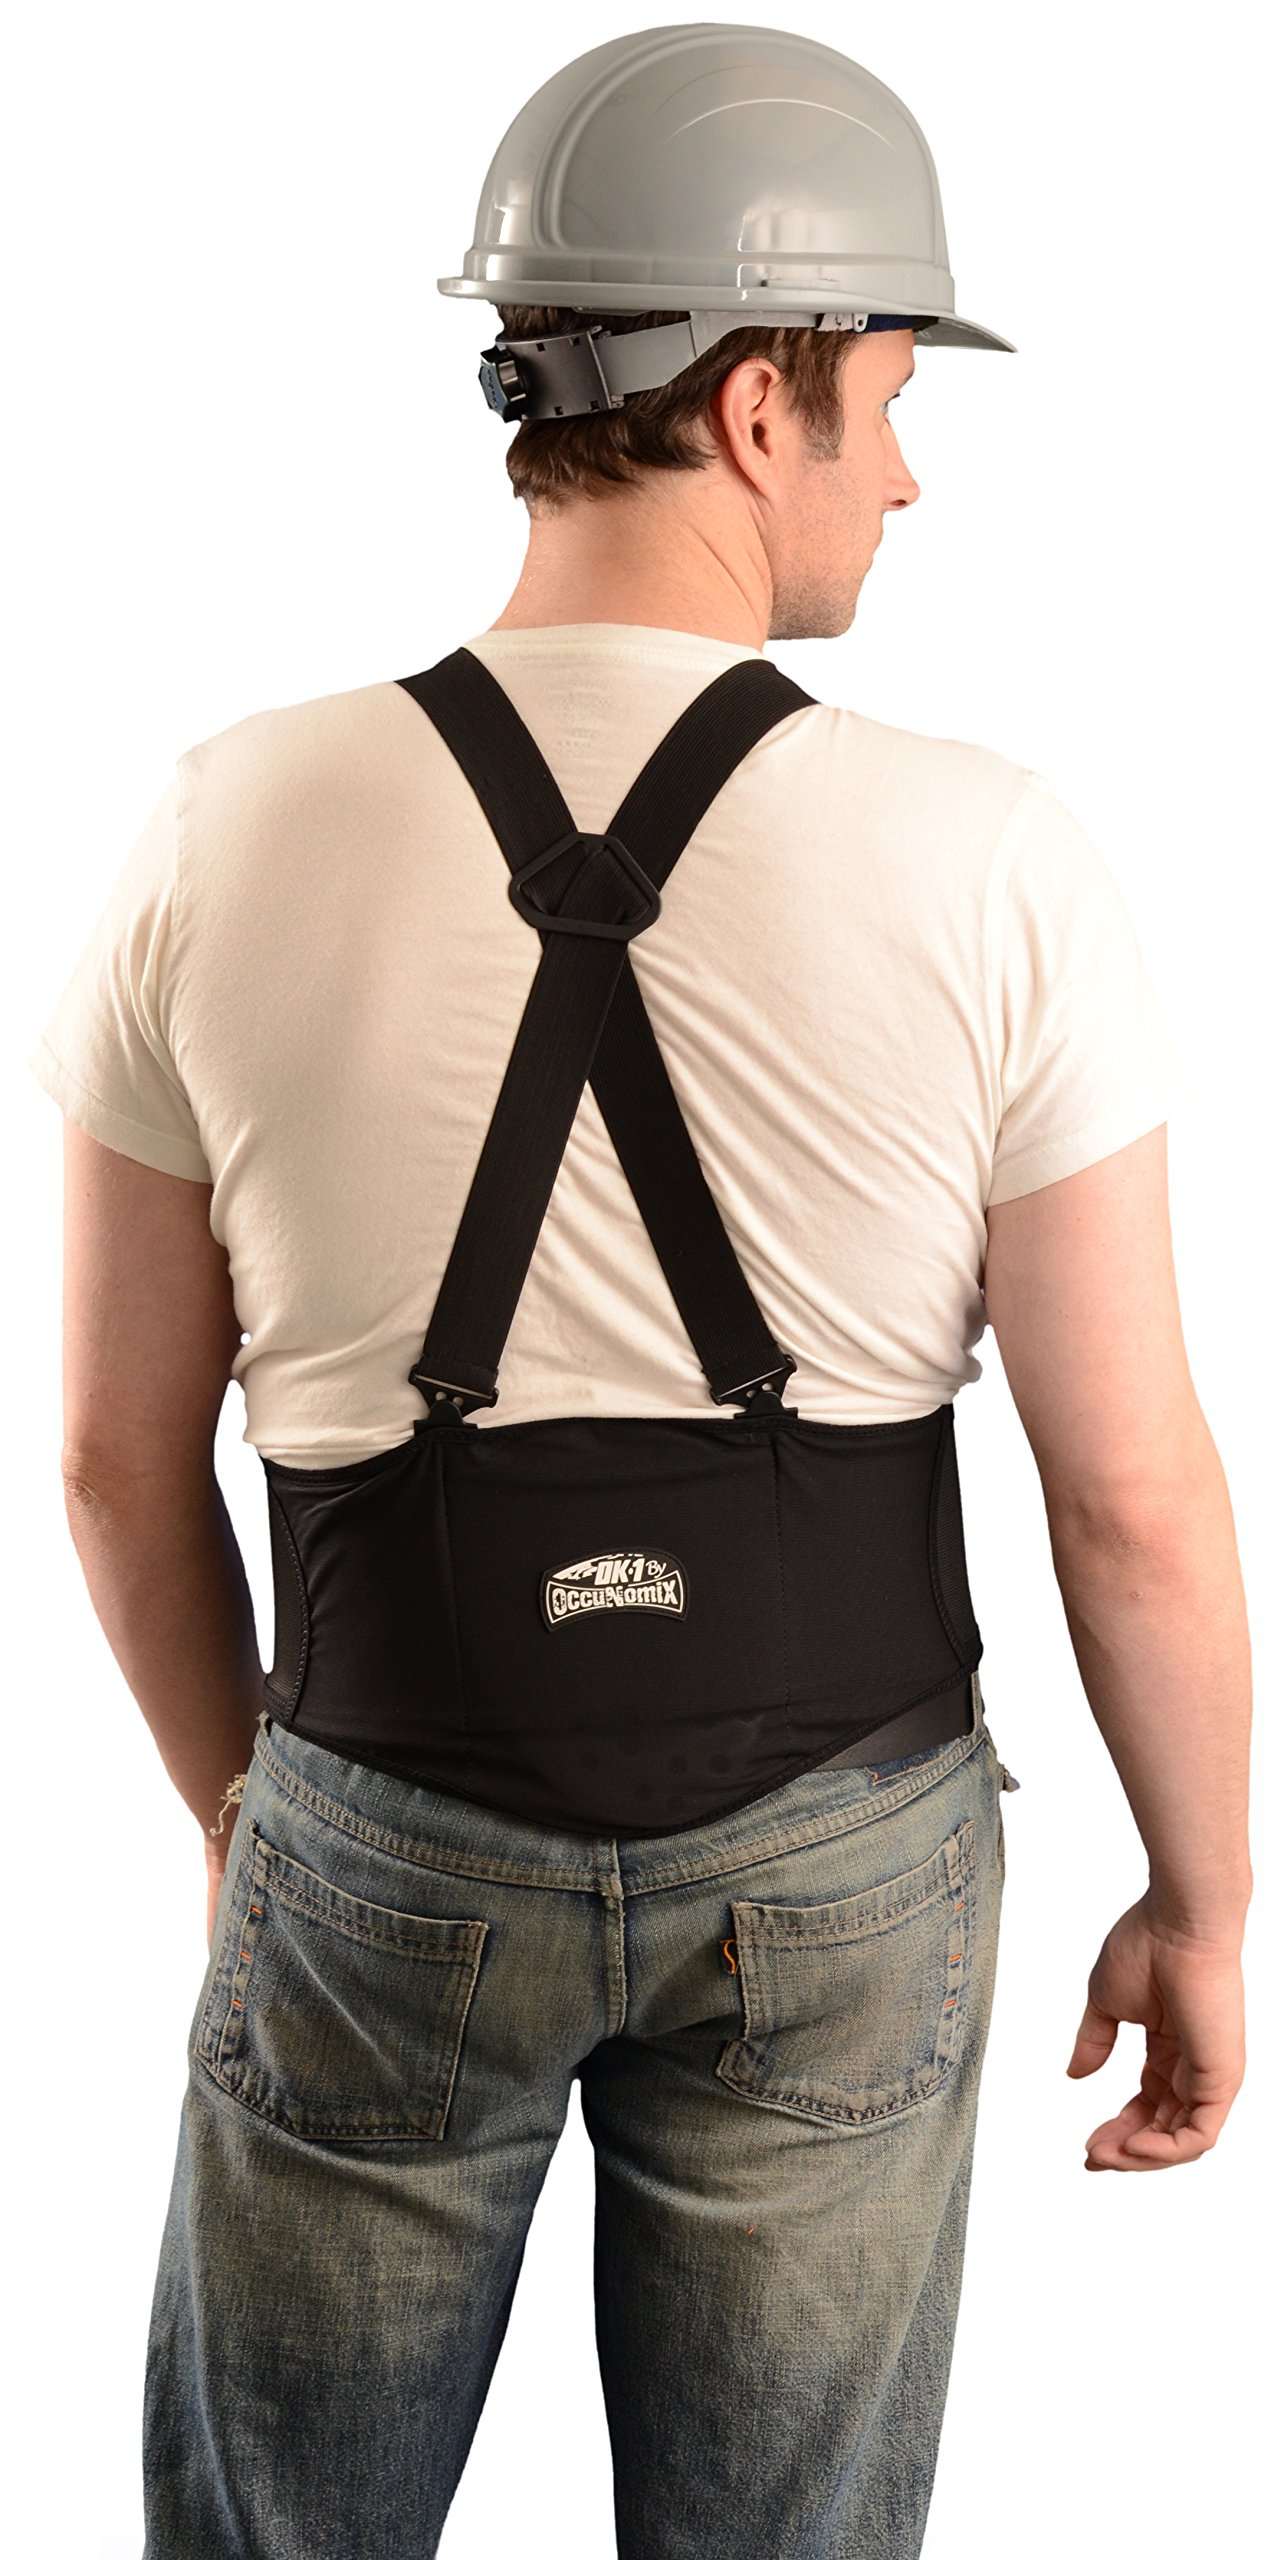 OK-1 92400 Black Lumbar Back Belt, Large by Unknown (Image #2)